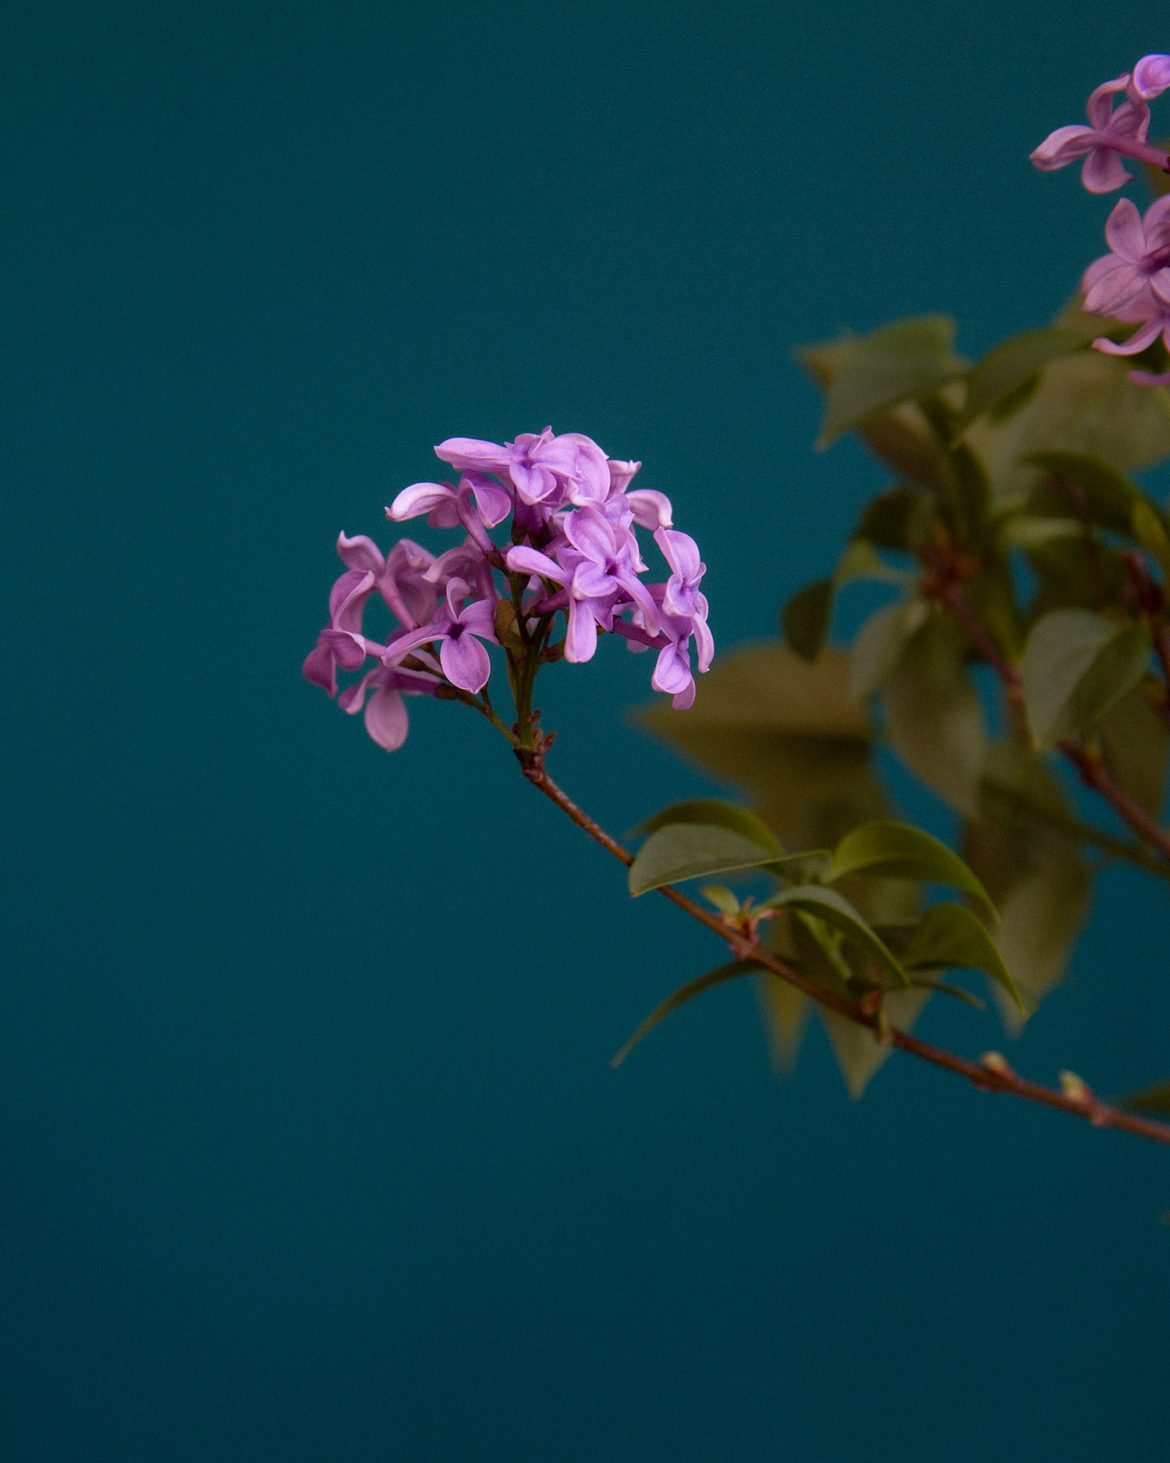 lilac flower still life photography